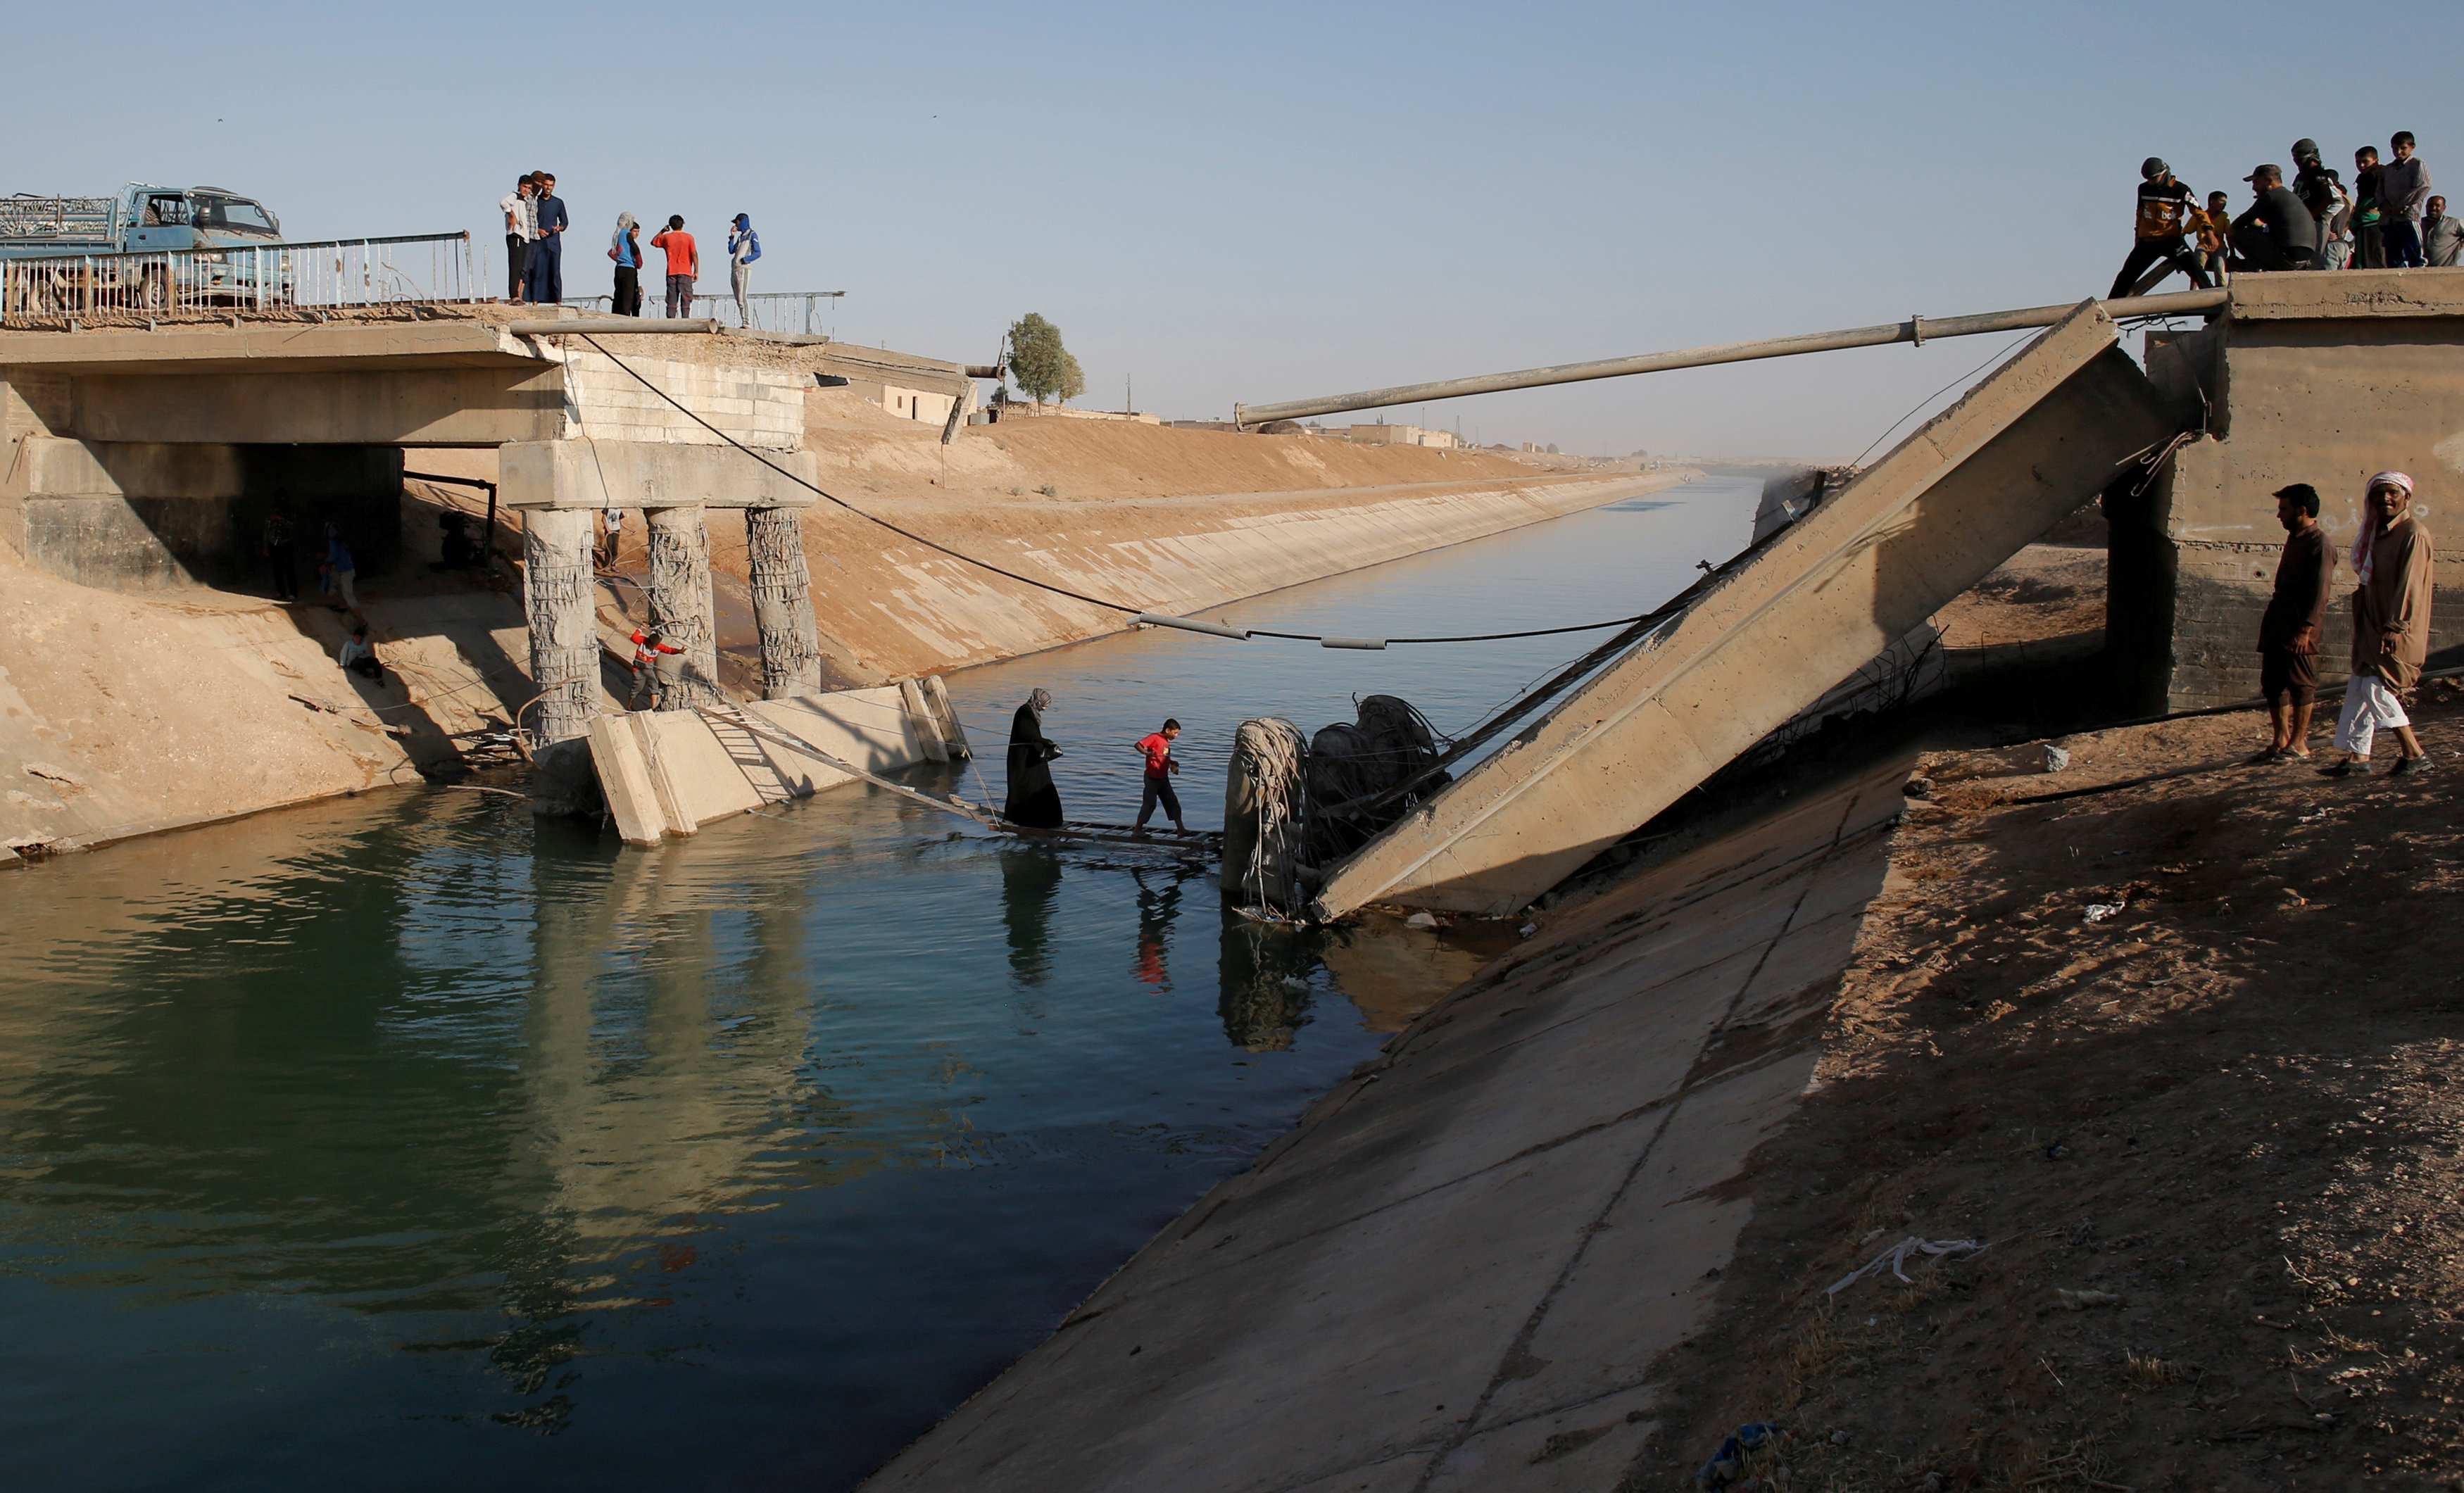 People cross a makeshift ladder in a village near Raqqa after a bridge was destroyed in fighting between the U.S.-led coalition and Islamic State, in Raqqa, Syria, June 16, 2017.